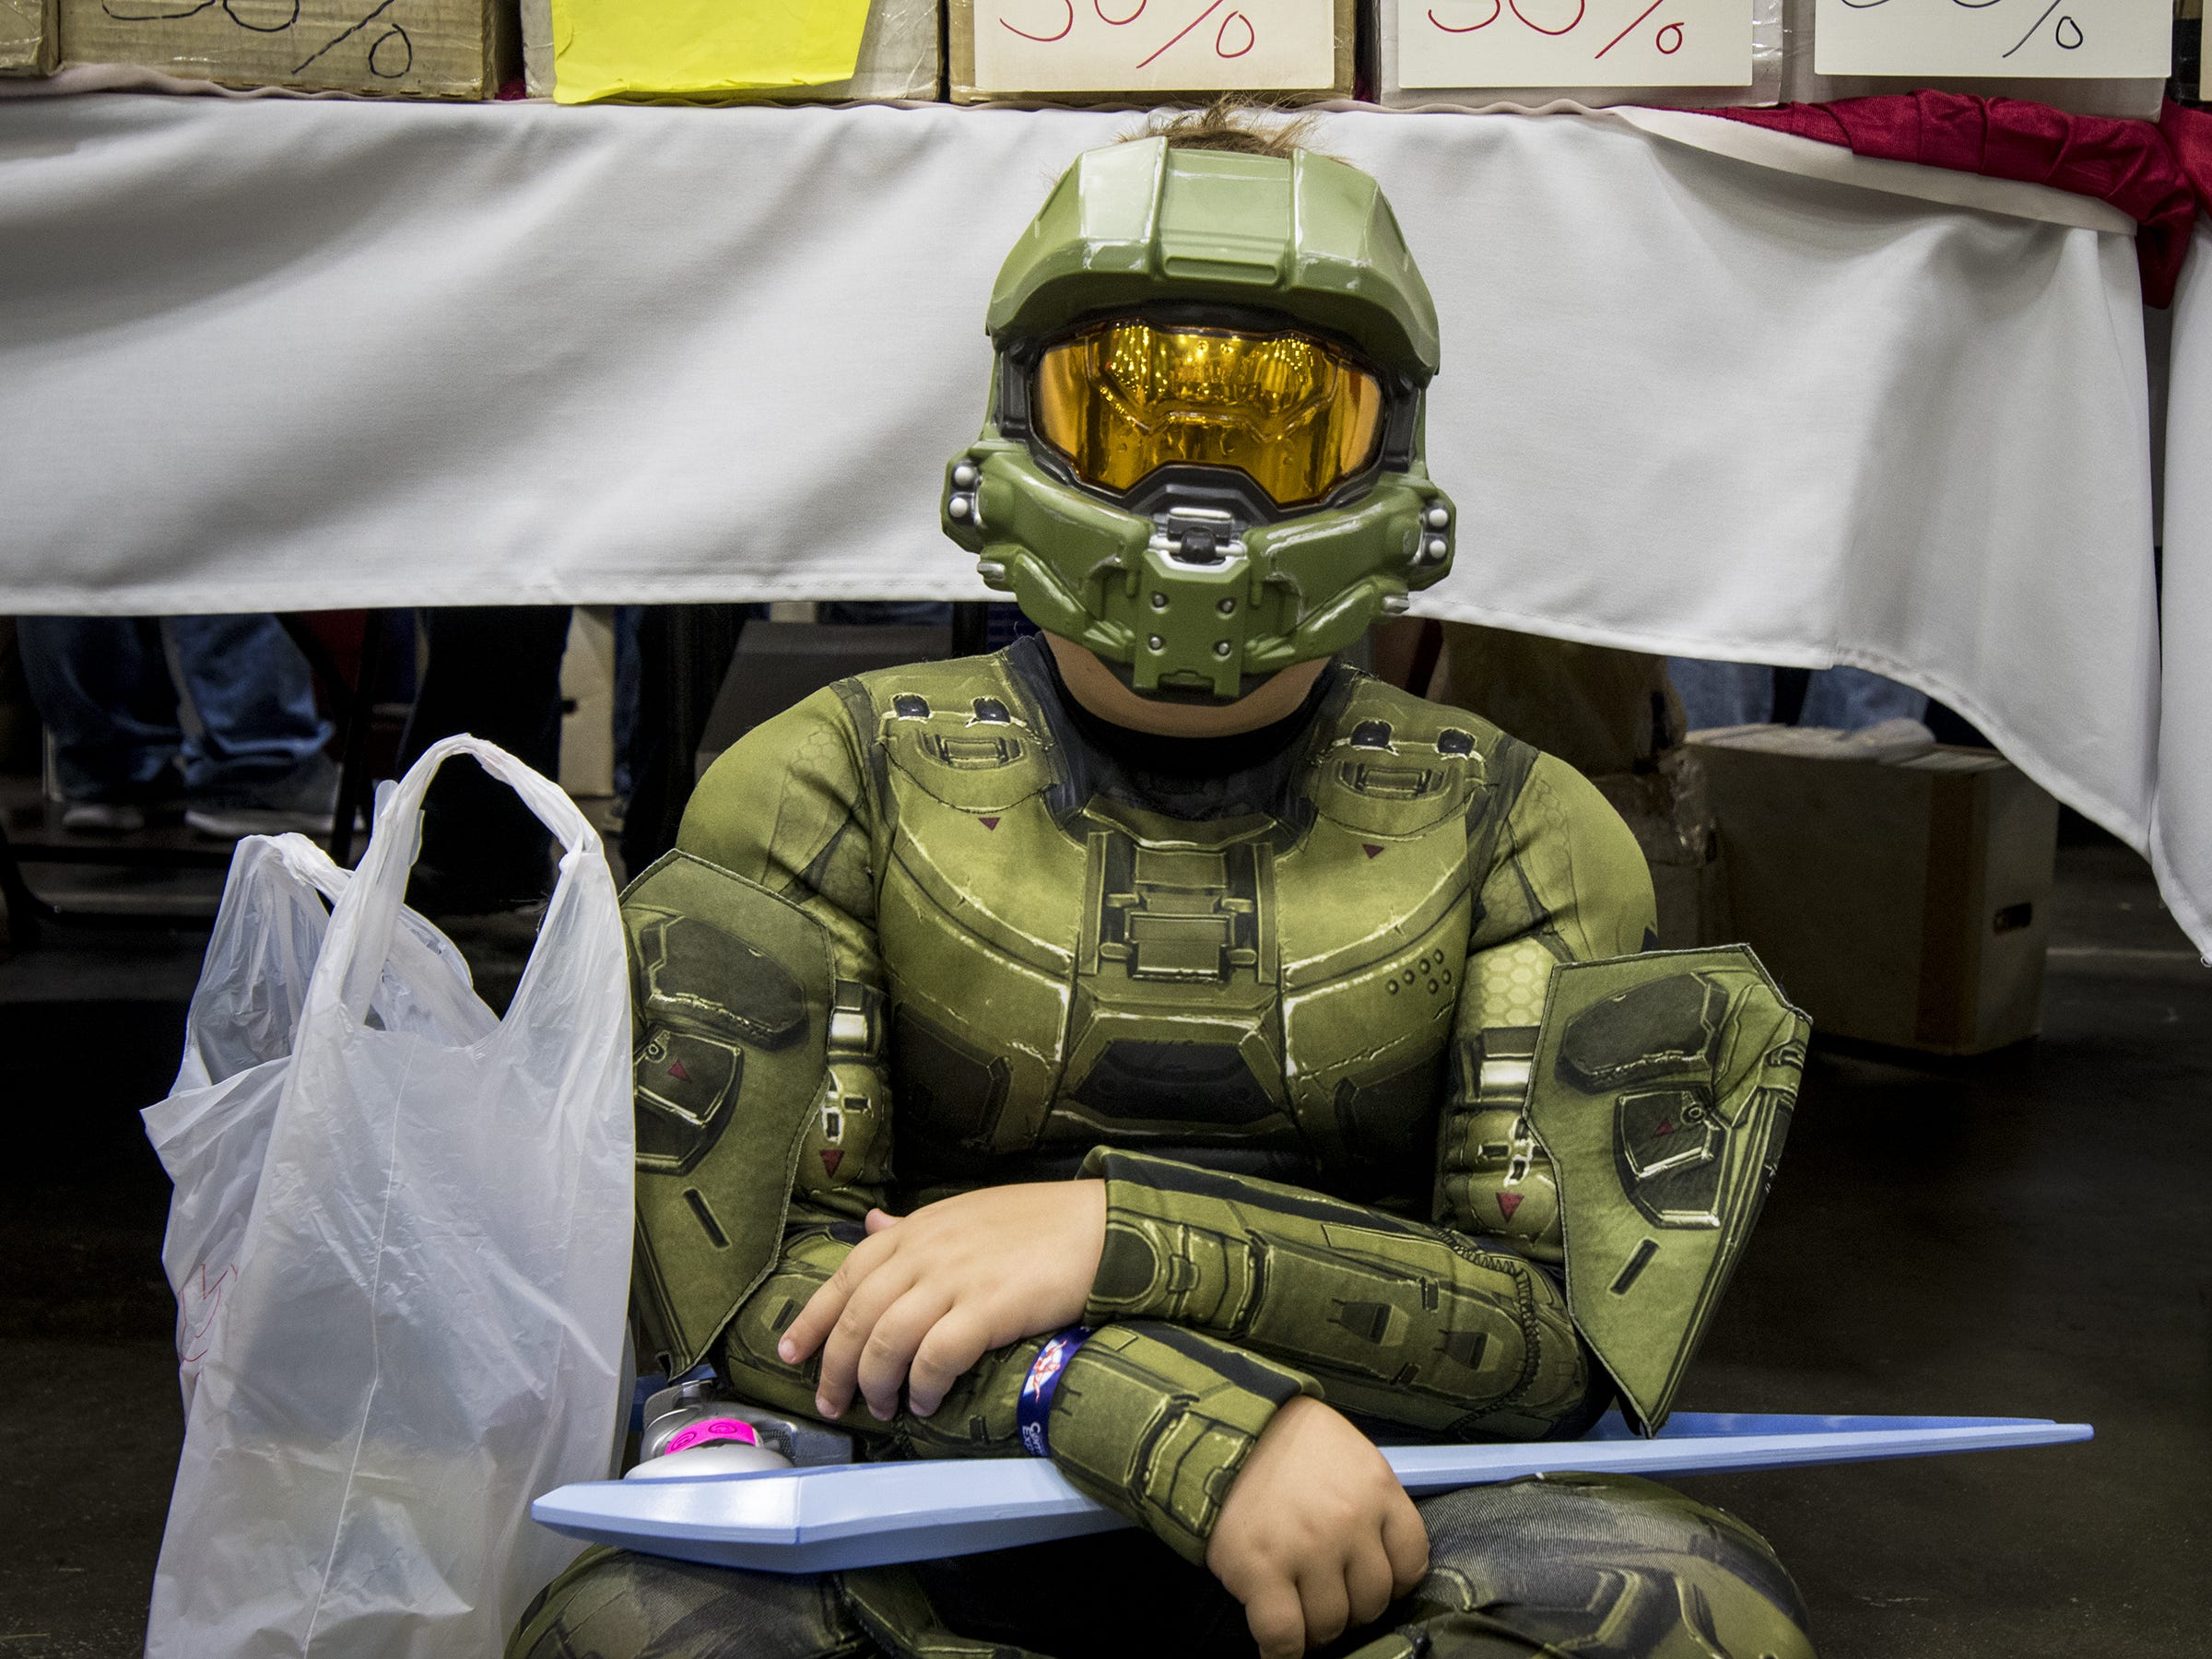 Lucas Leap, 10, of Crittenden is dressed as the Master Chief from the video game Halo.